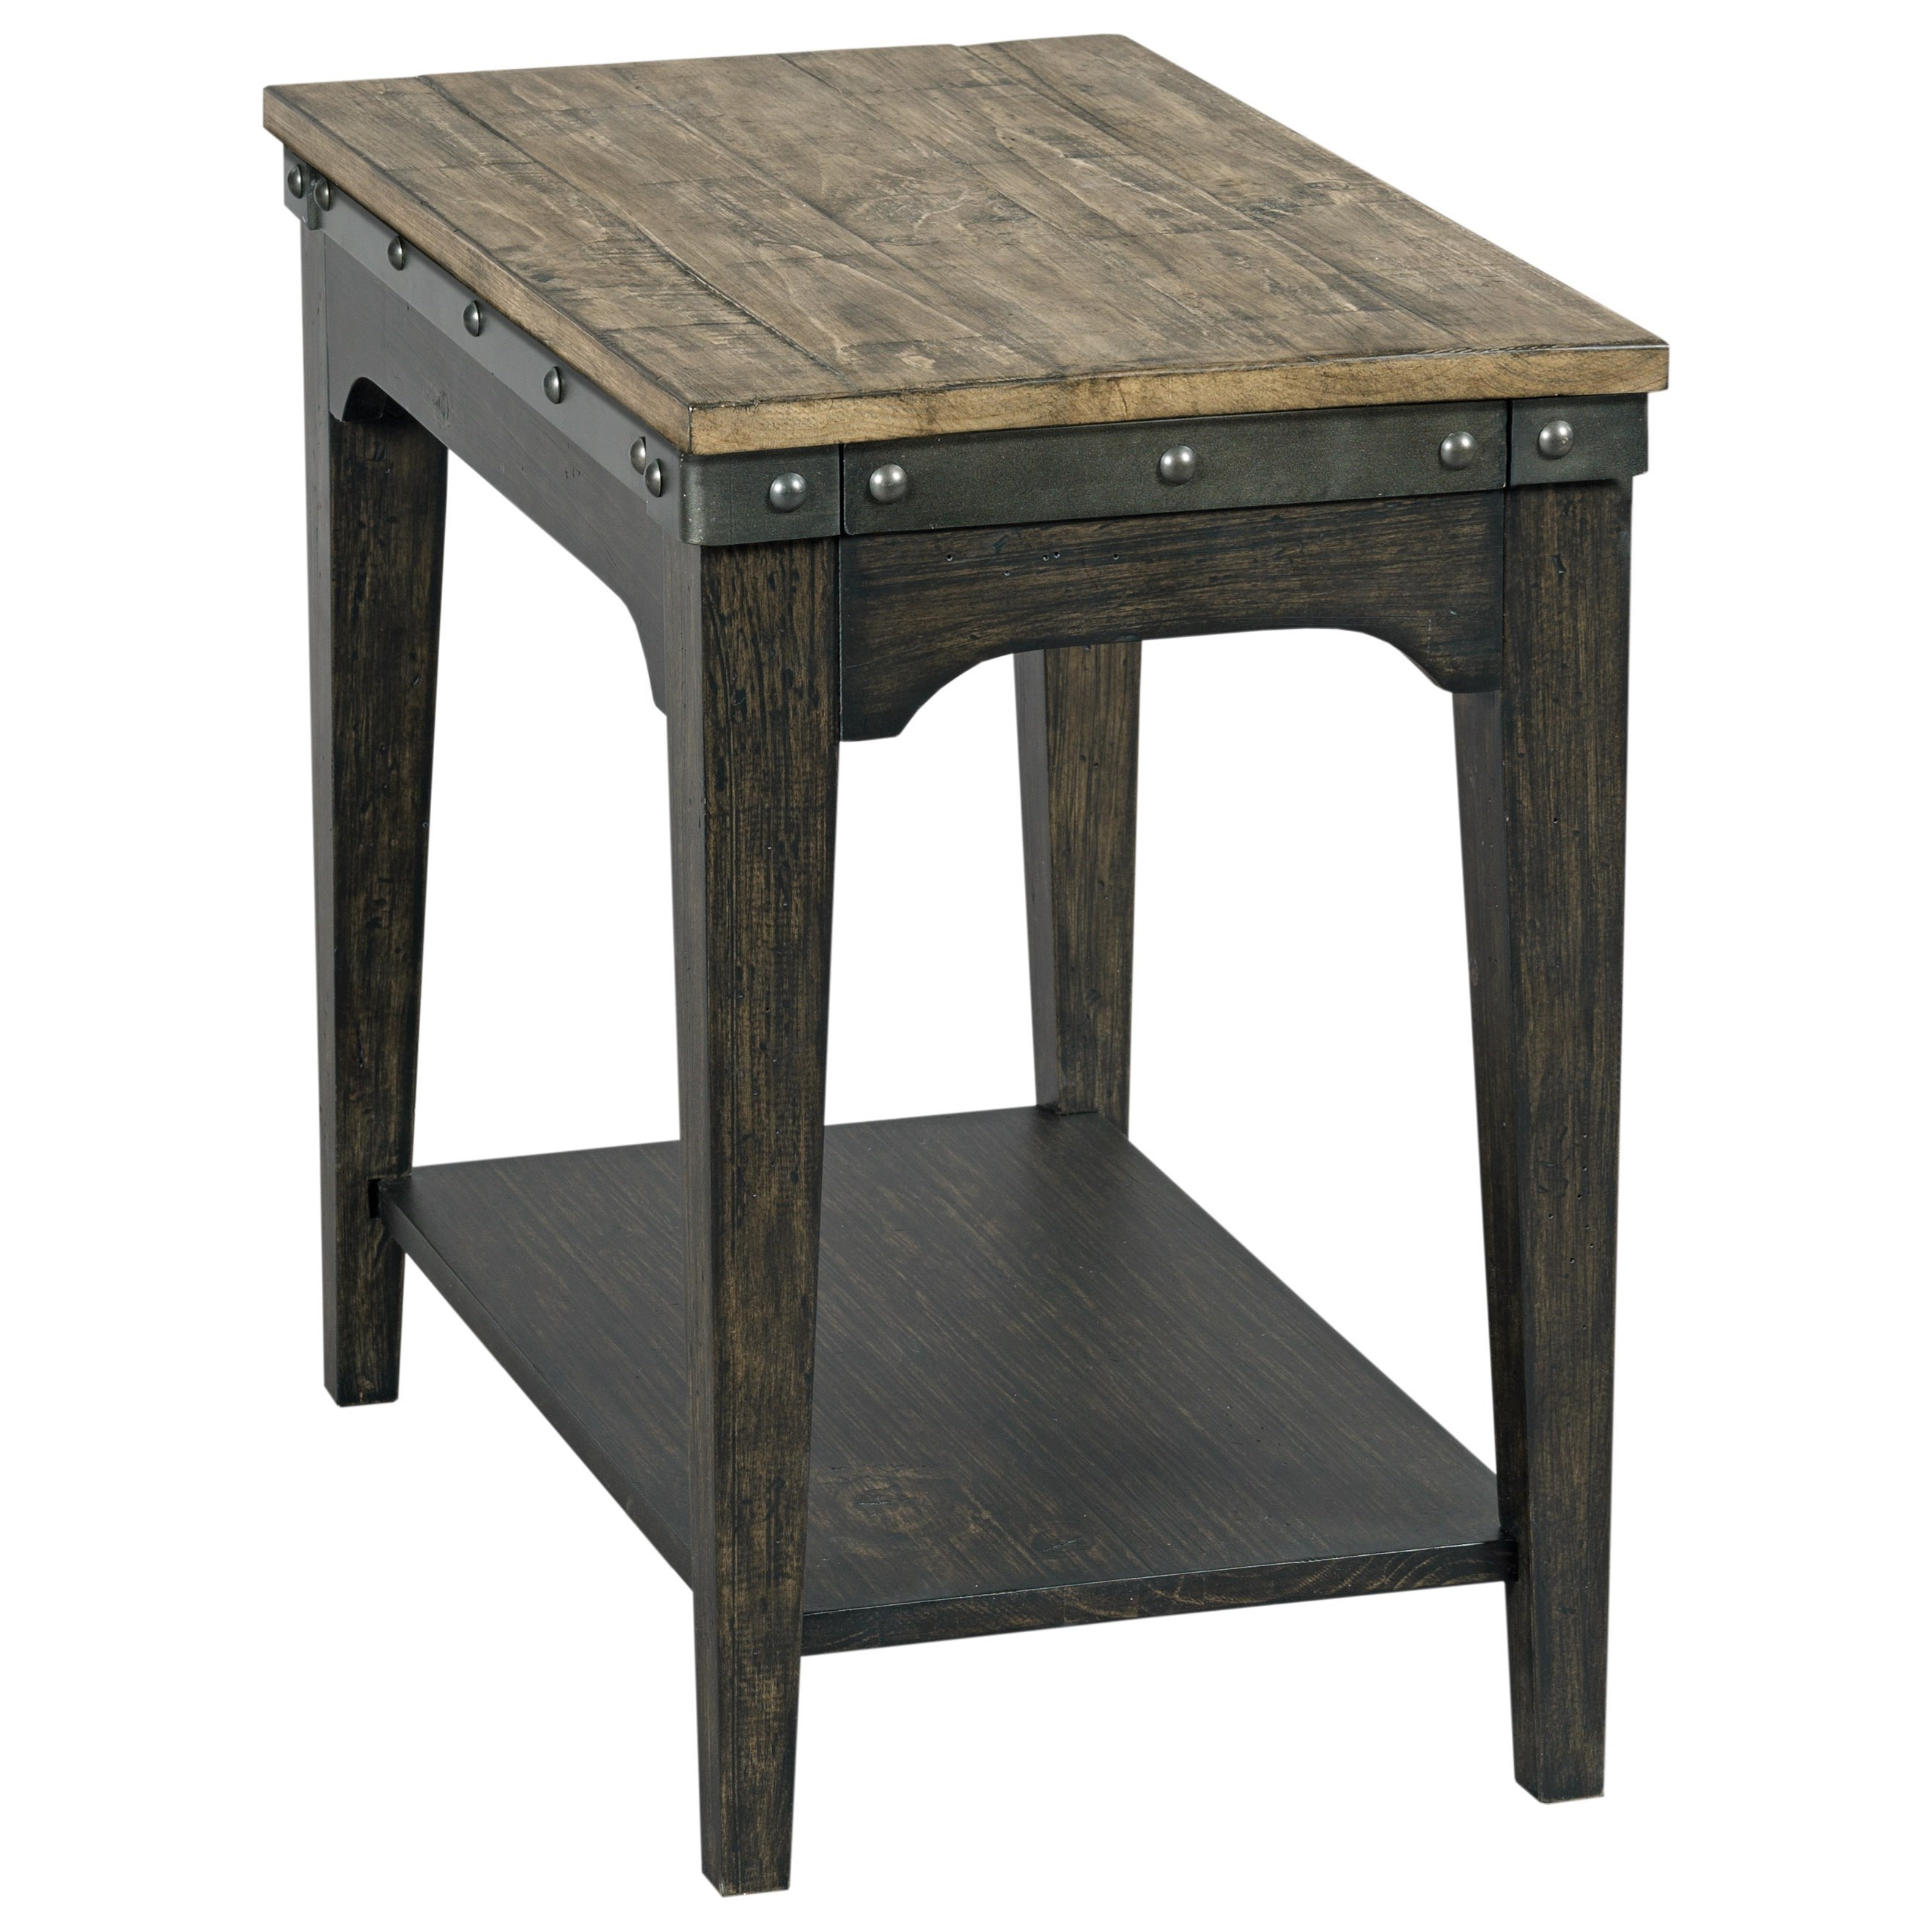 Artisans Chairside Table